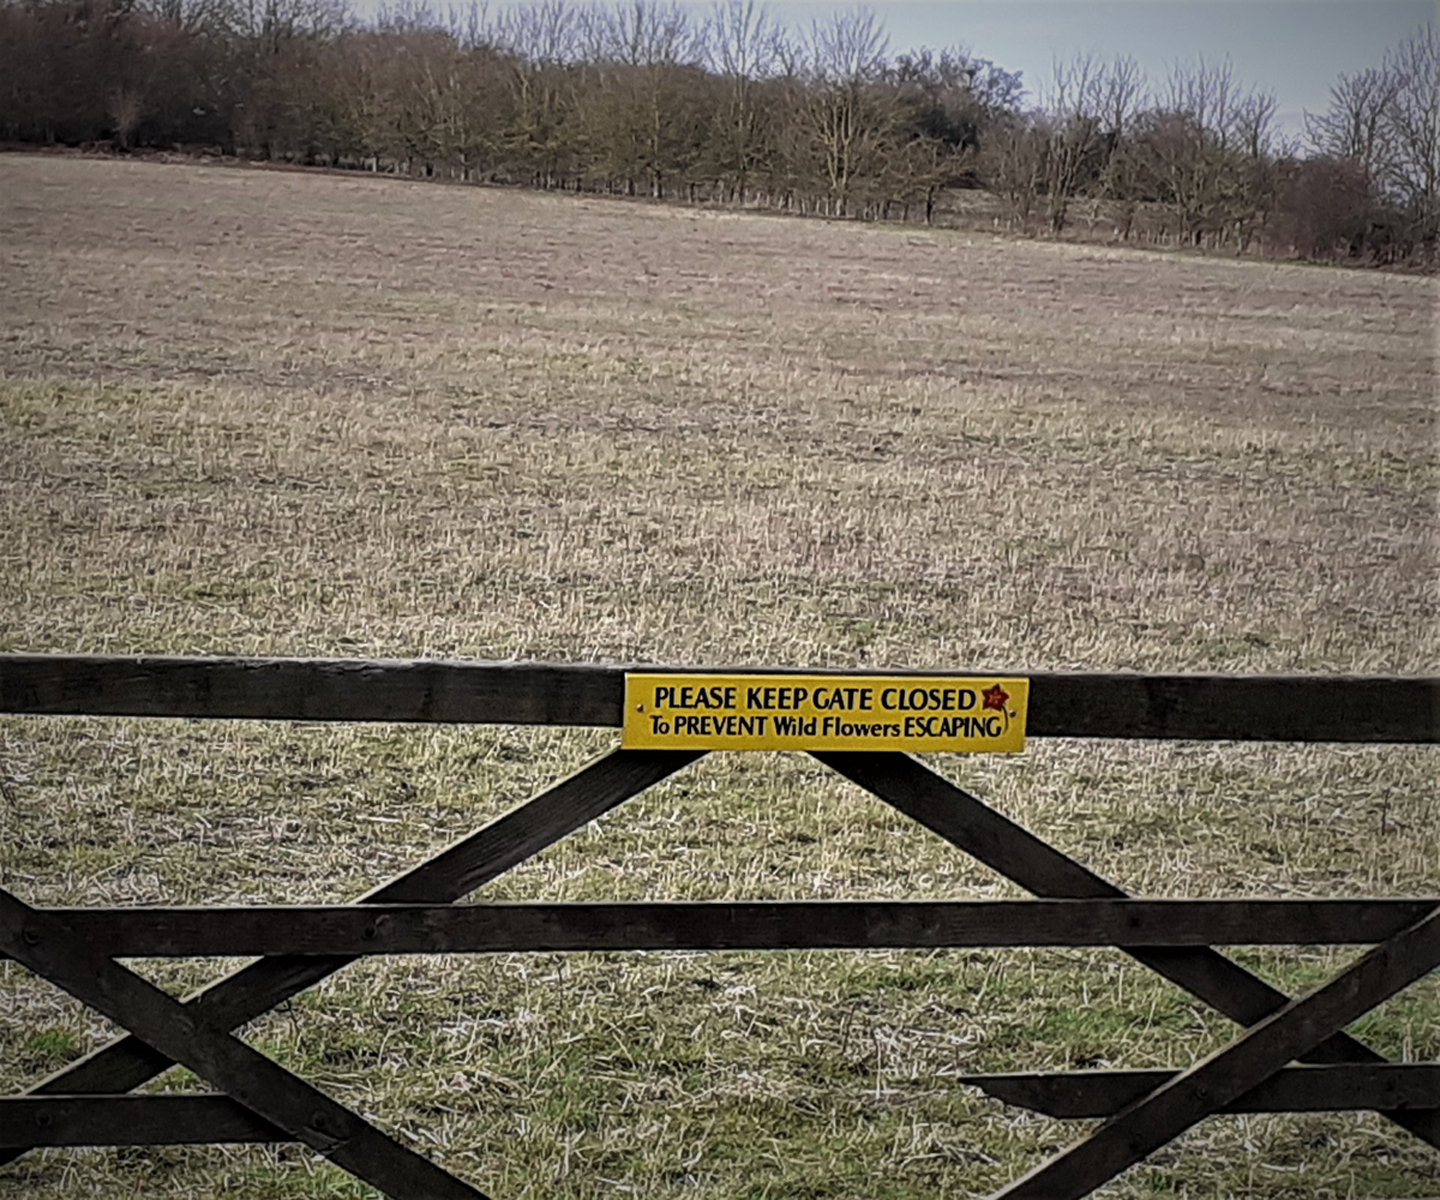 The farmer with a sense of humour.